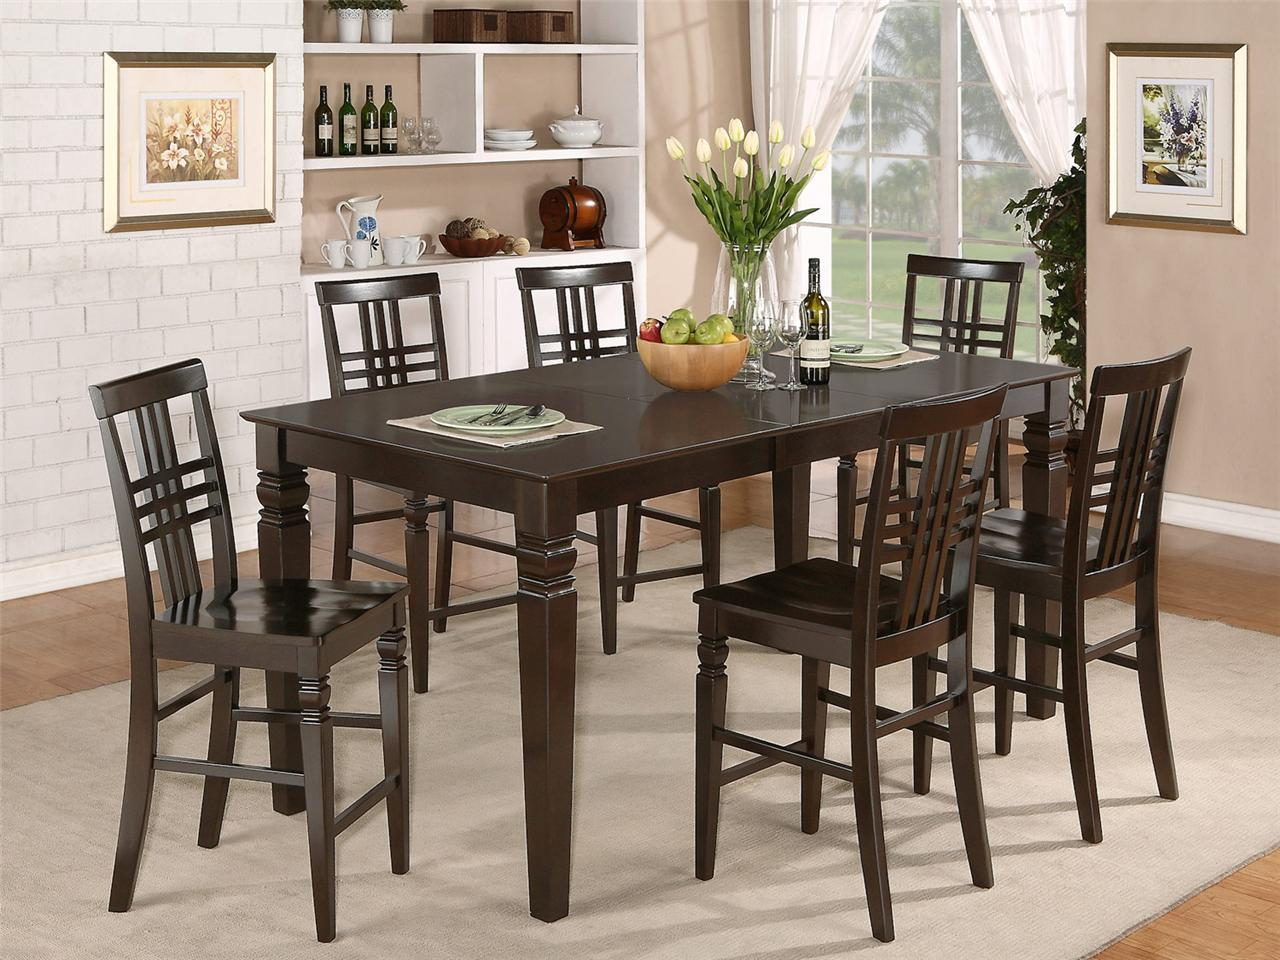 9pc rectangular counter height dining room table set 8 for Counter height dining table